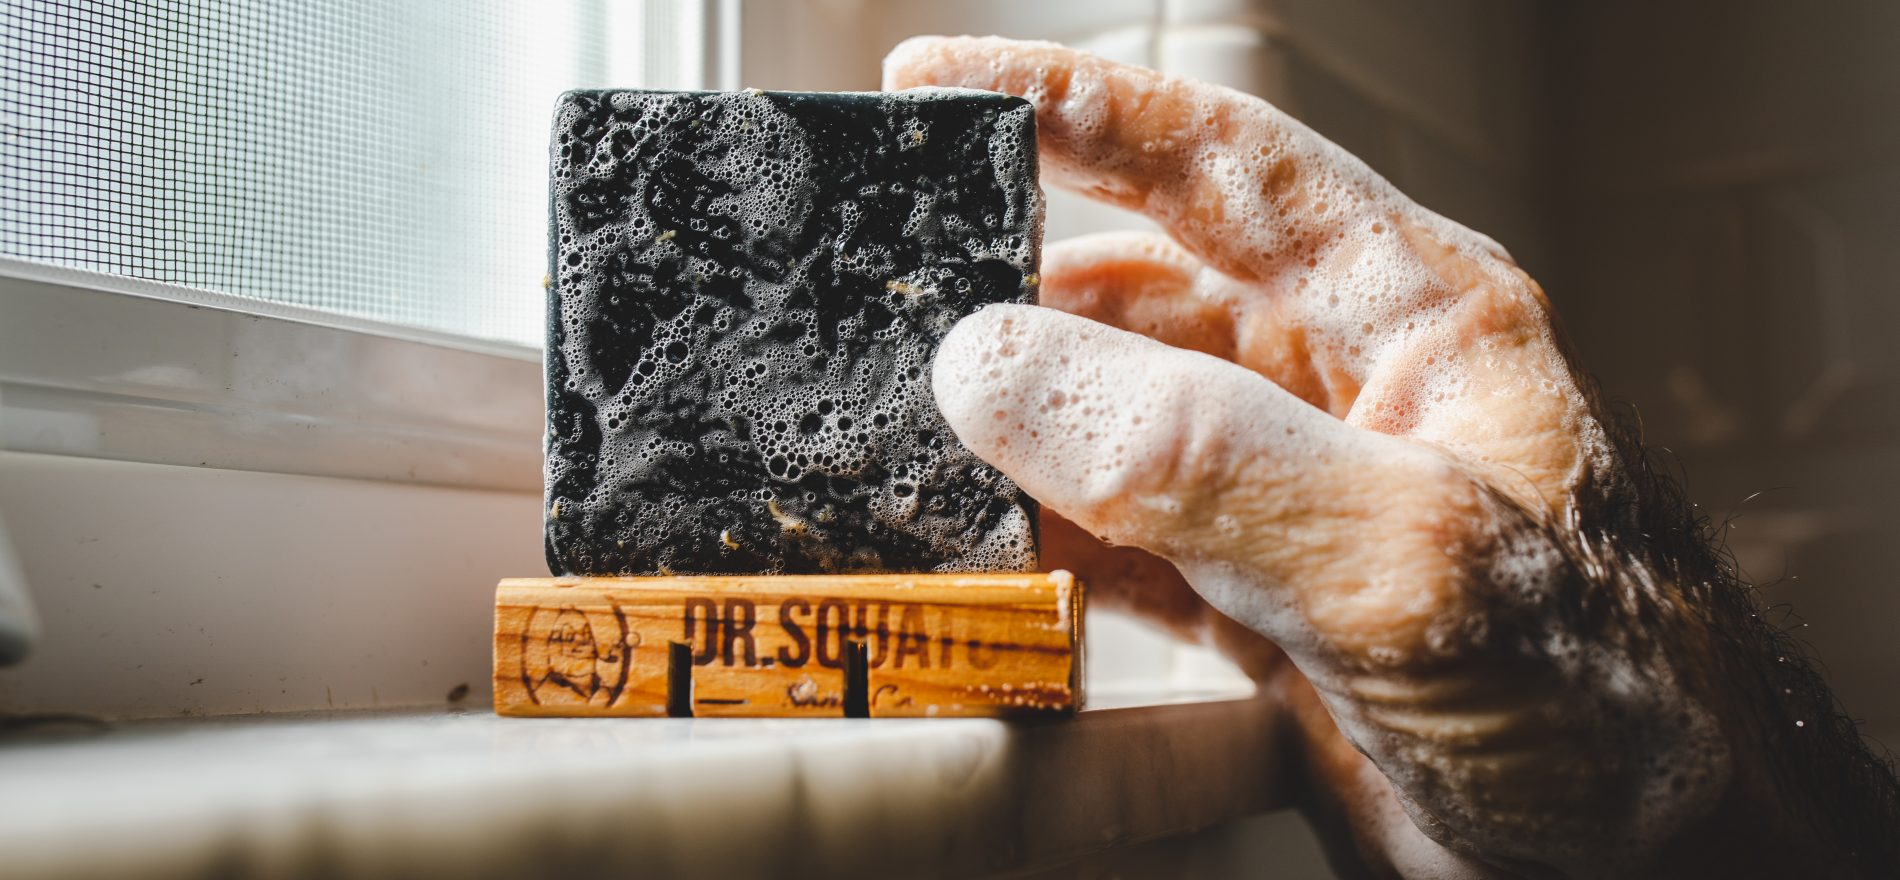 which is better bar soap or body wash men